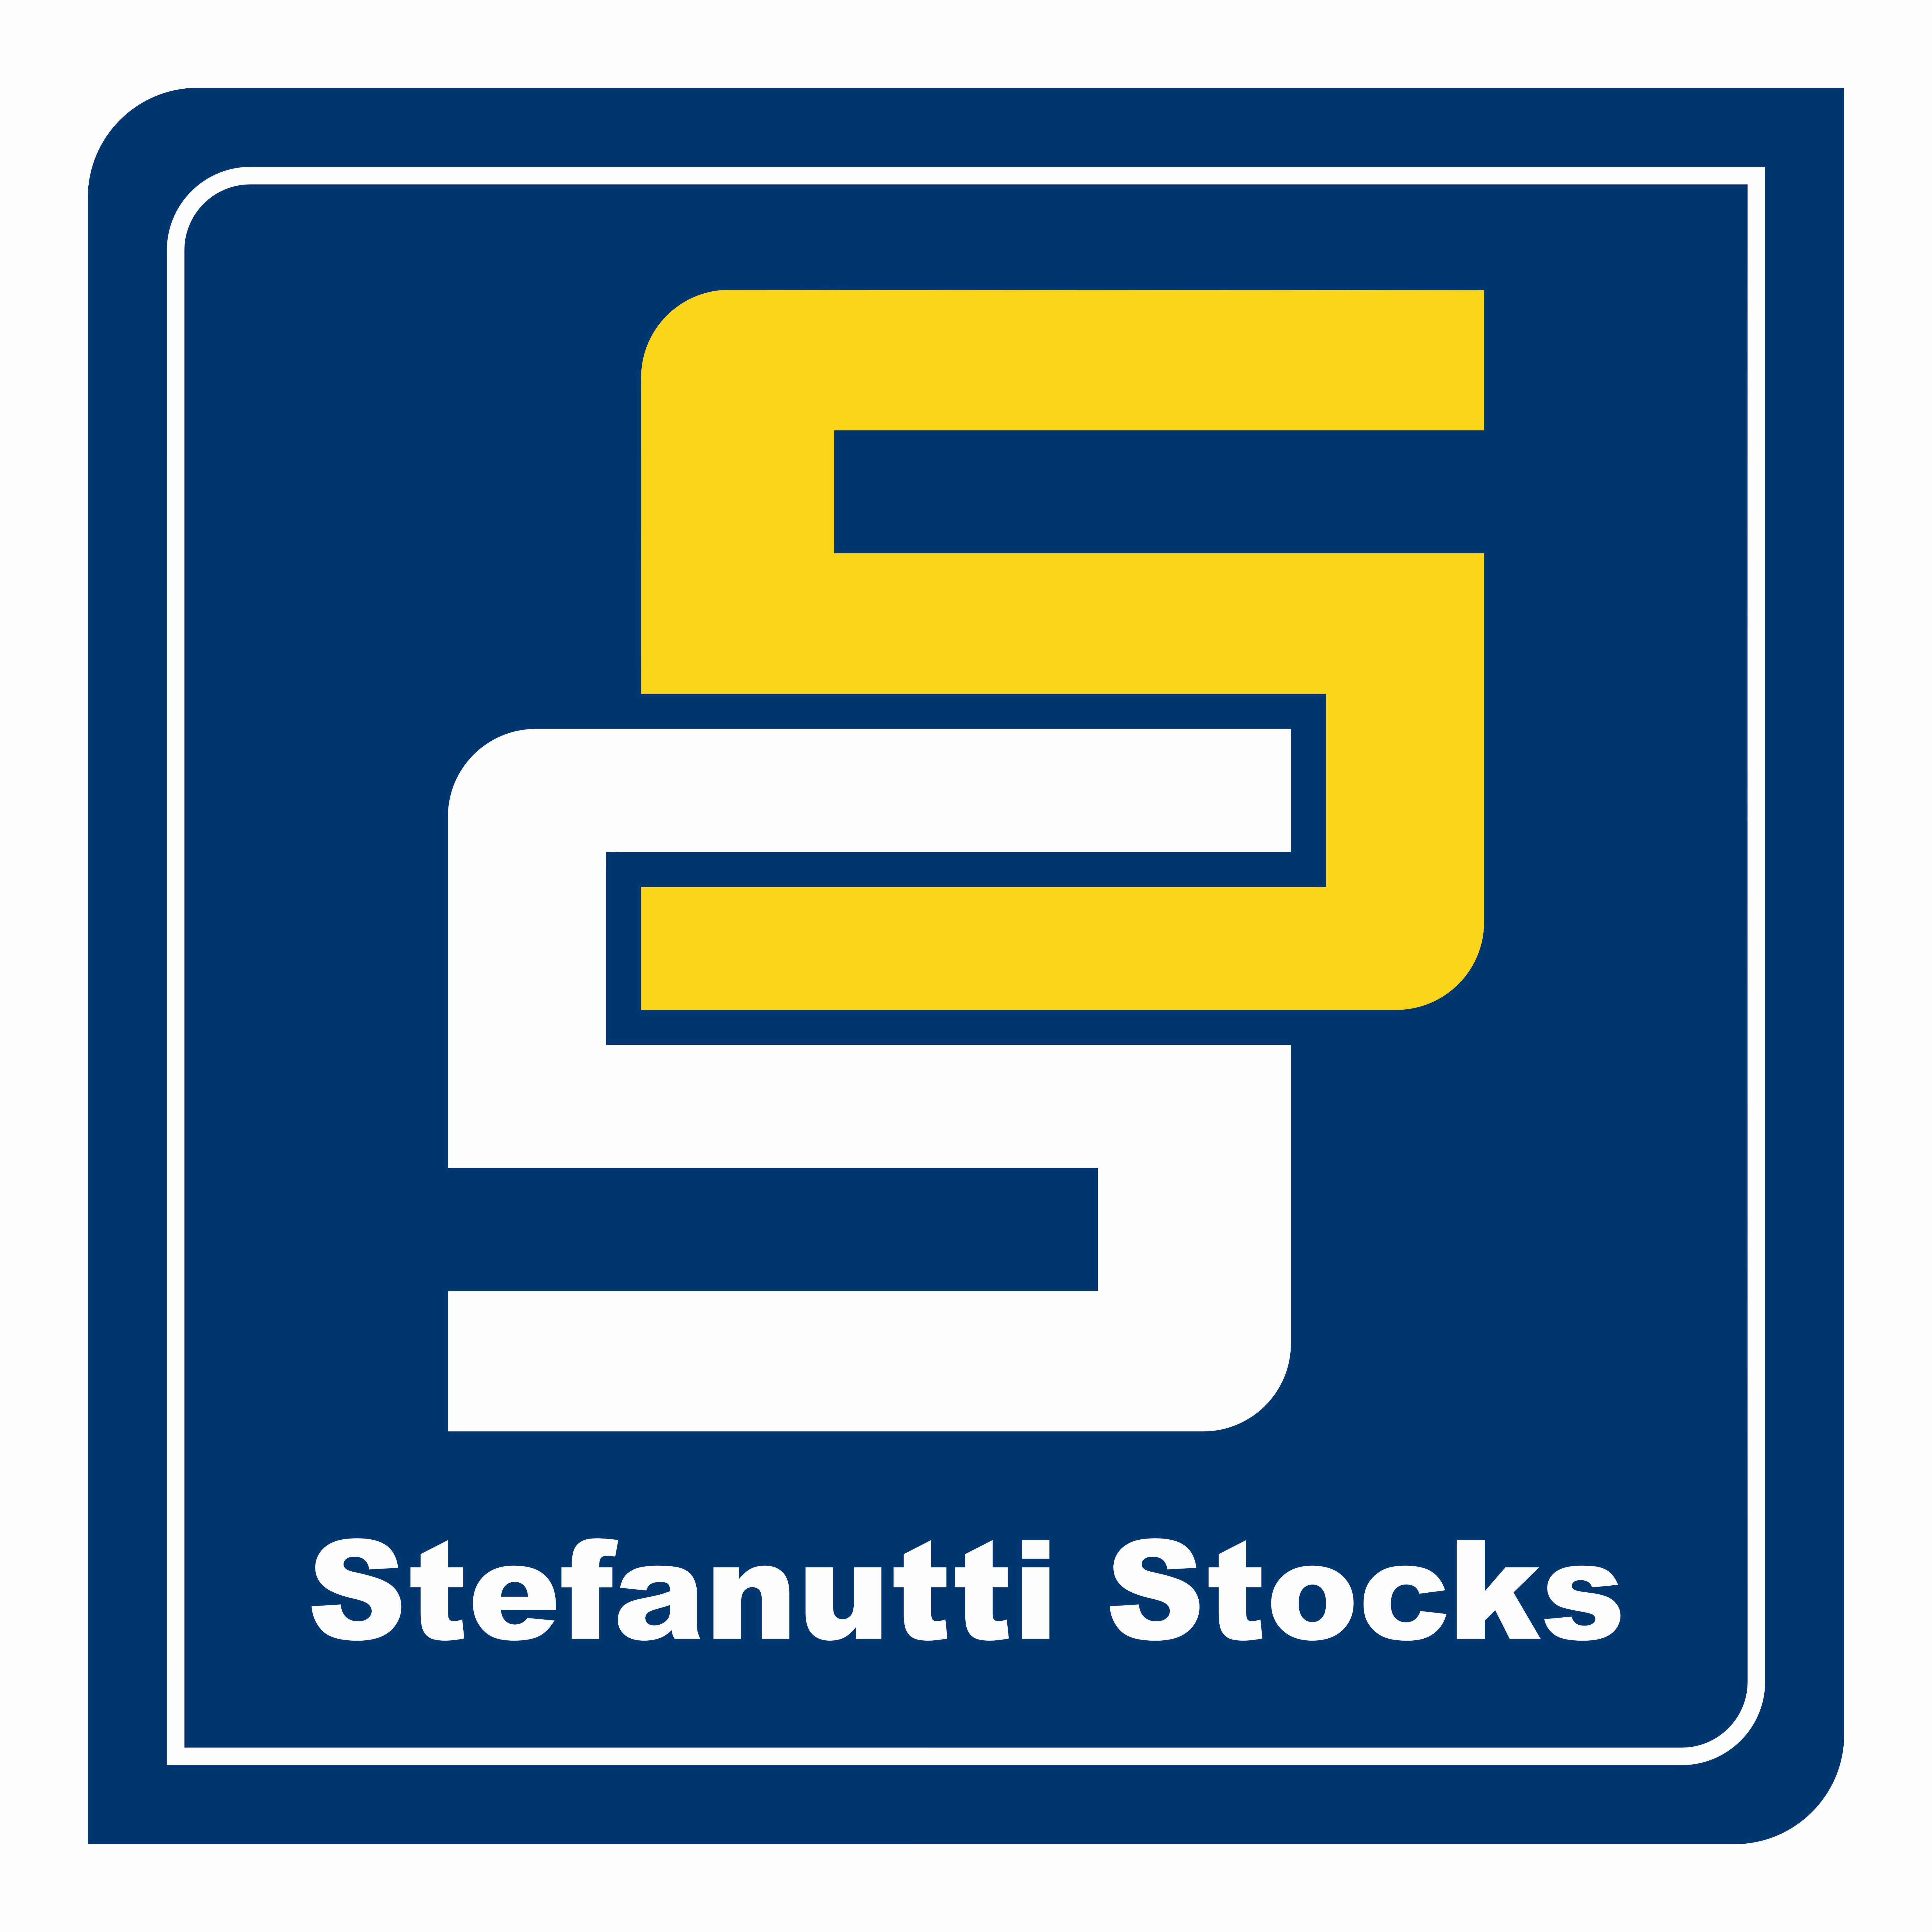 Stefanutti stocks logo